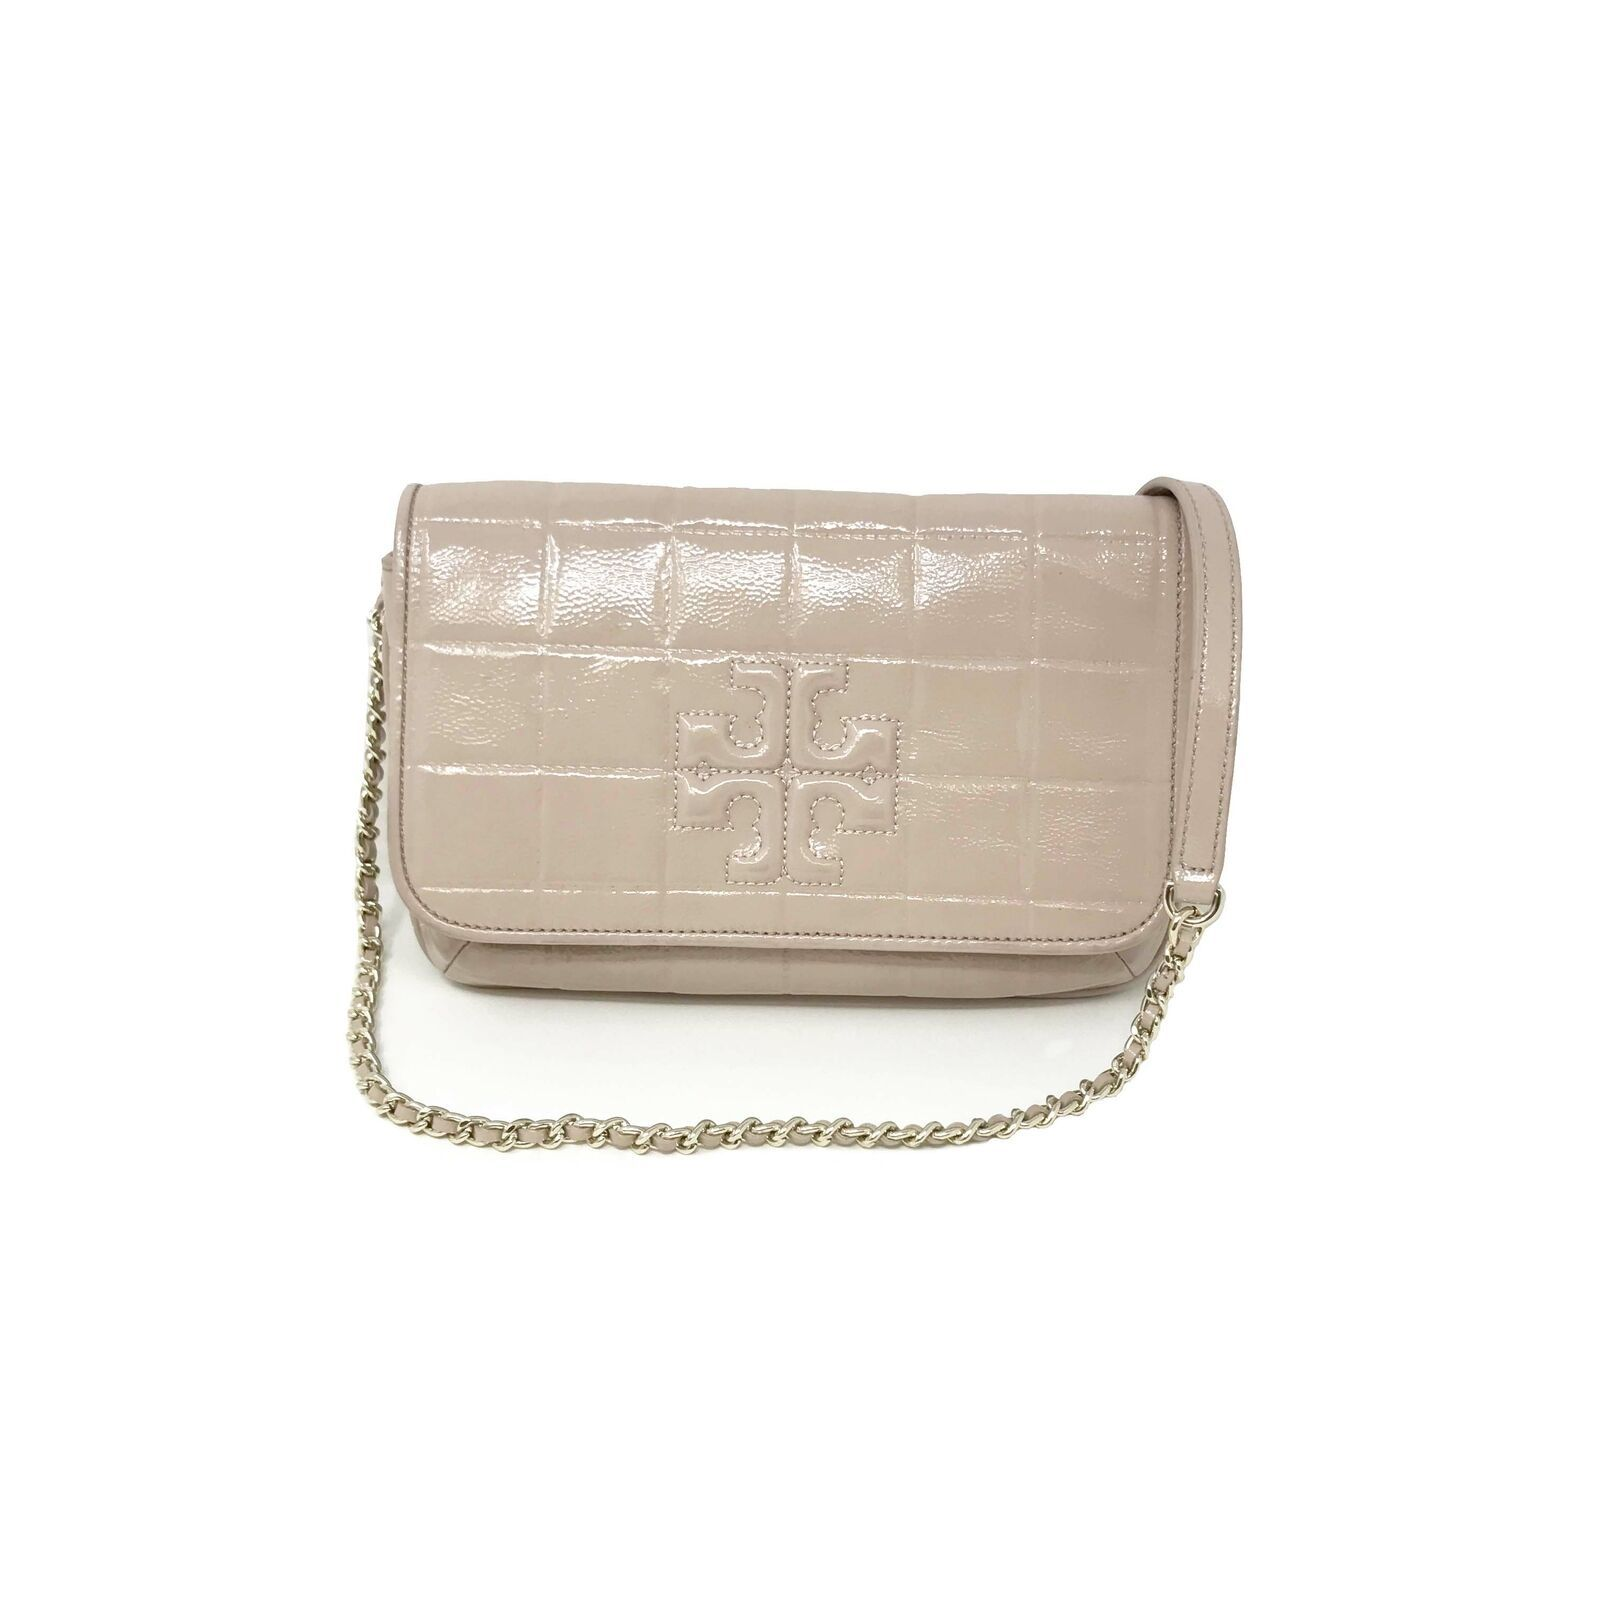 Primary image for TORY BURCH 32159753 Marion Quilted Patetnt Light Oak Women's Clutch